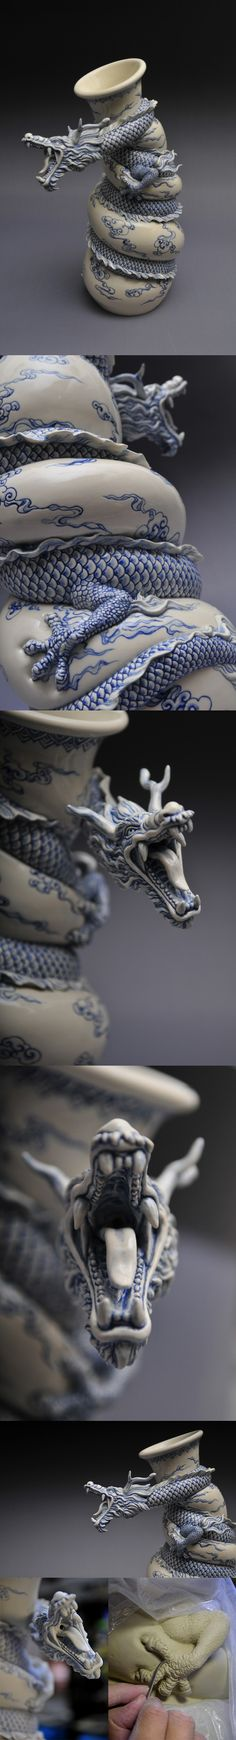 A Dragon Teapot by Johnson Tsang tea sculpture ceramics http://teadrinktime.com/all-about-tea/best-green-tea-brands/